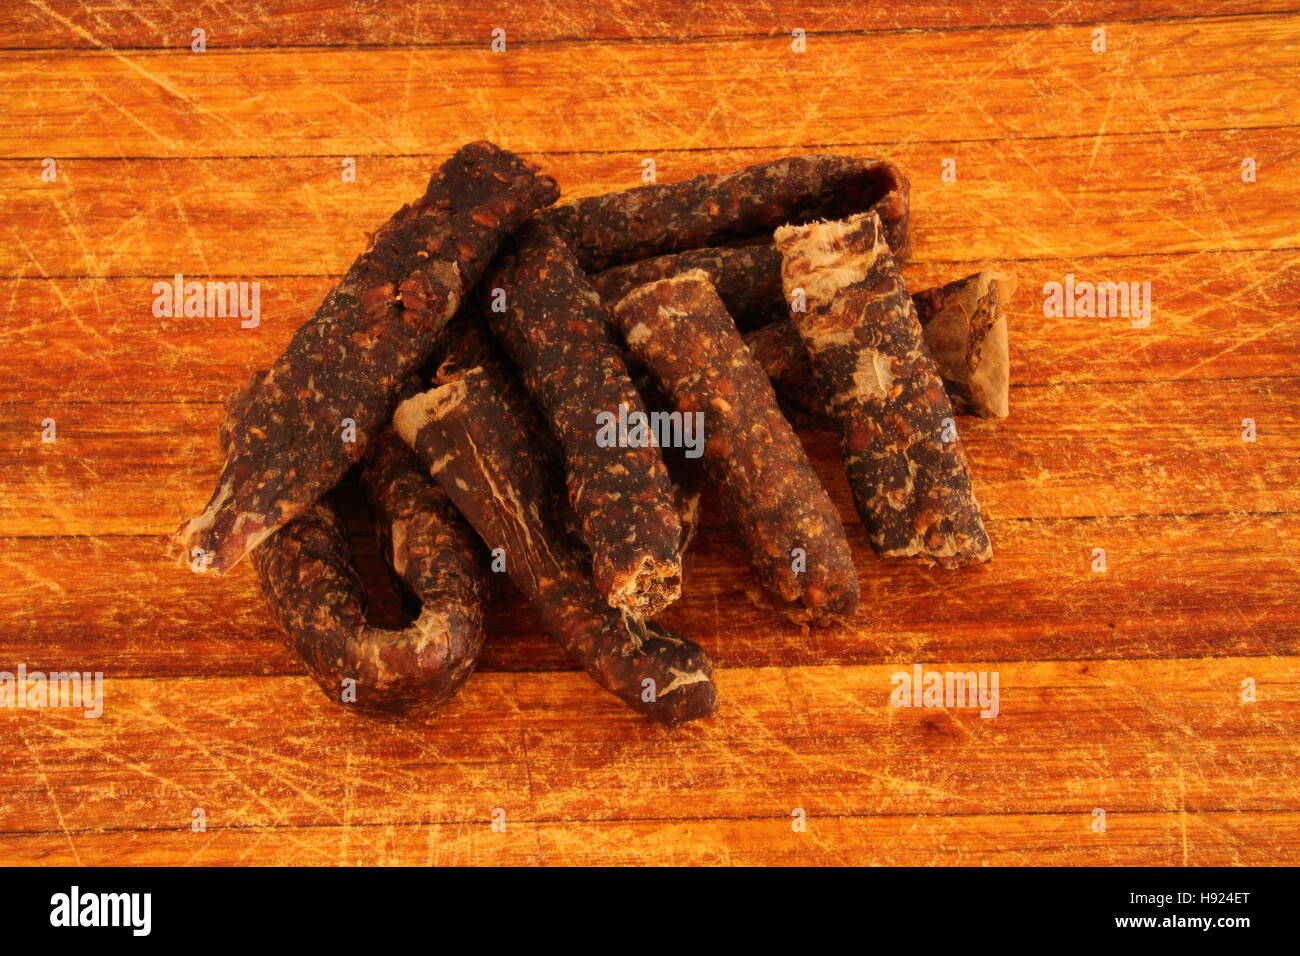 Droewors - dried sausage a traditional Afrikaner snack originated in South Africa - Stock Image